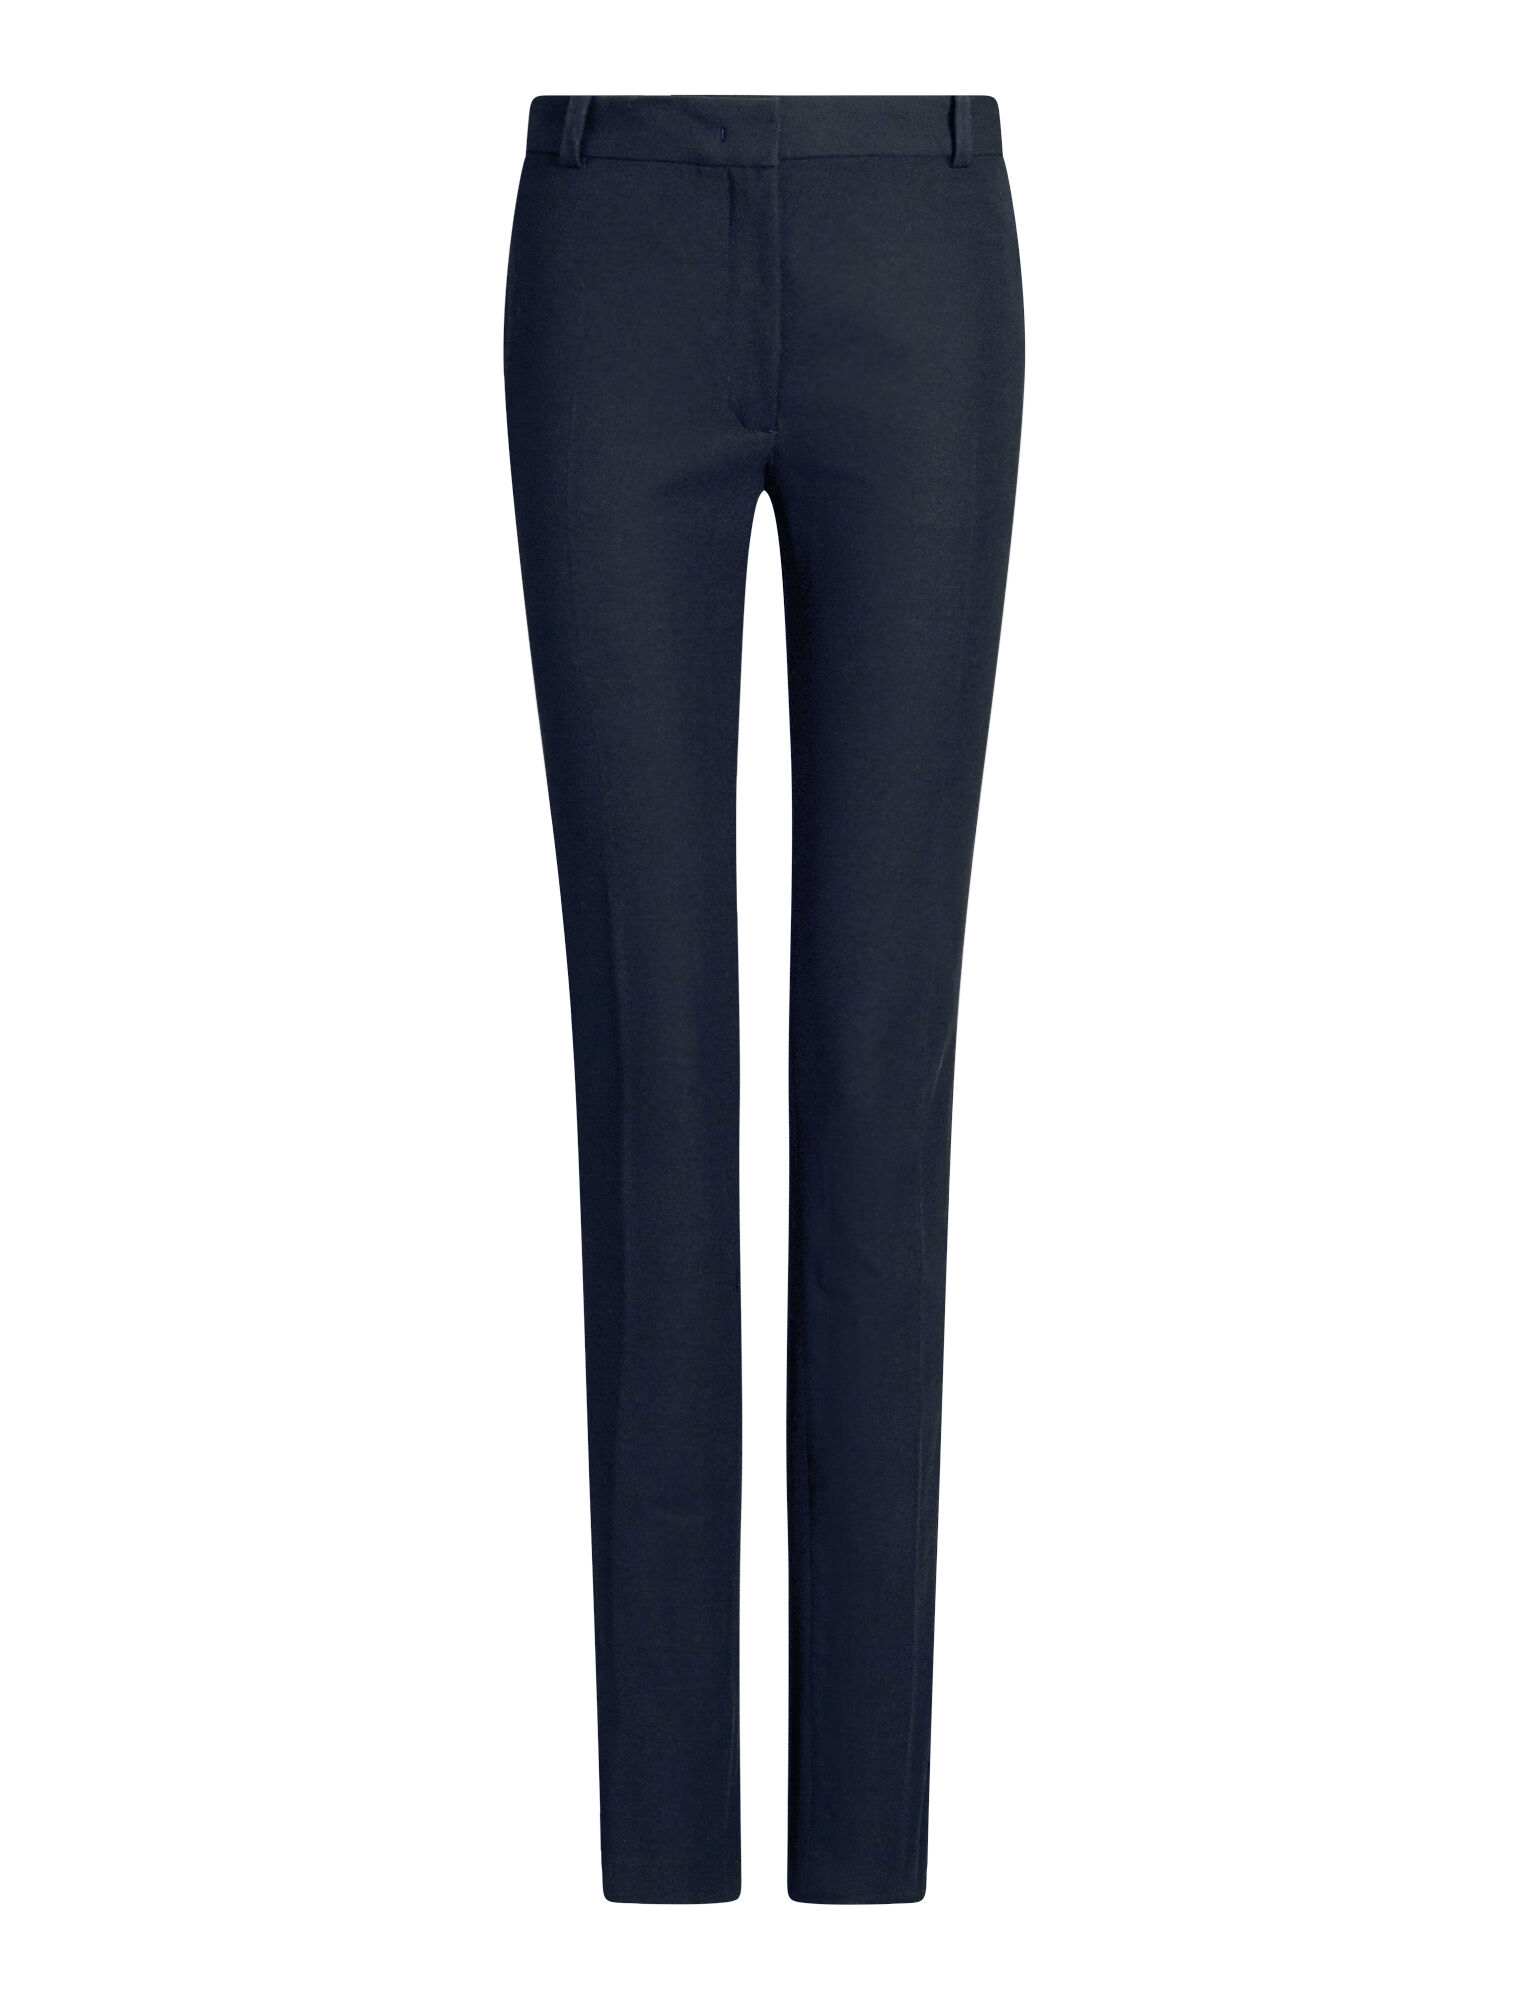 Joseph, Zoran Gabardine Stretch Trousers, in NAVY